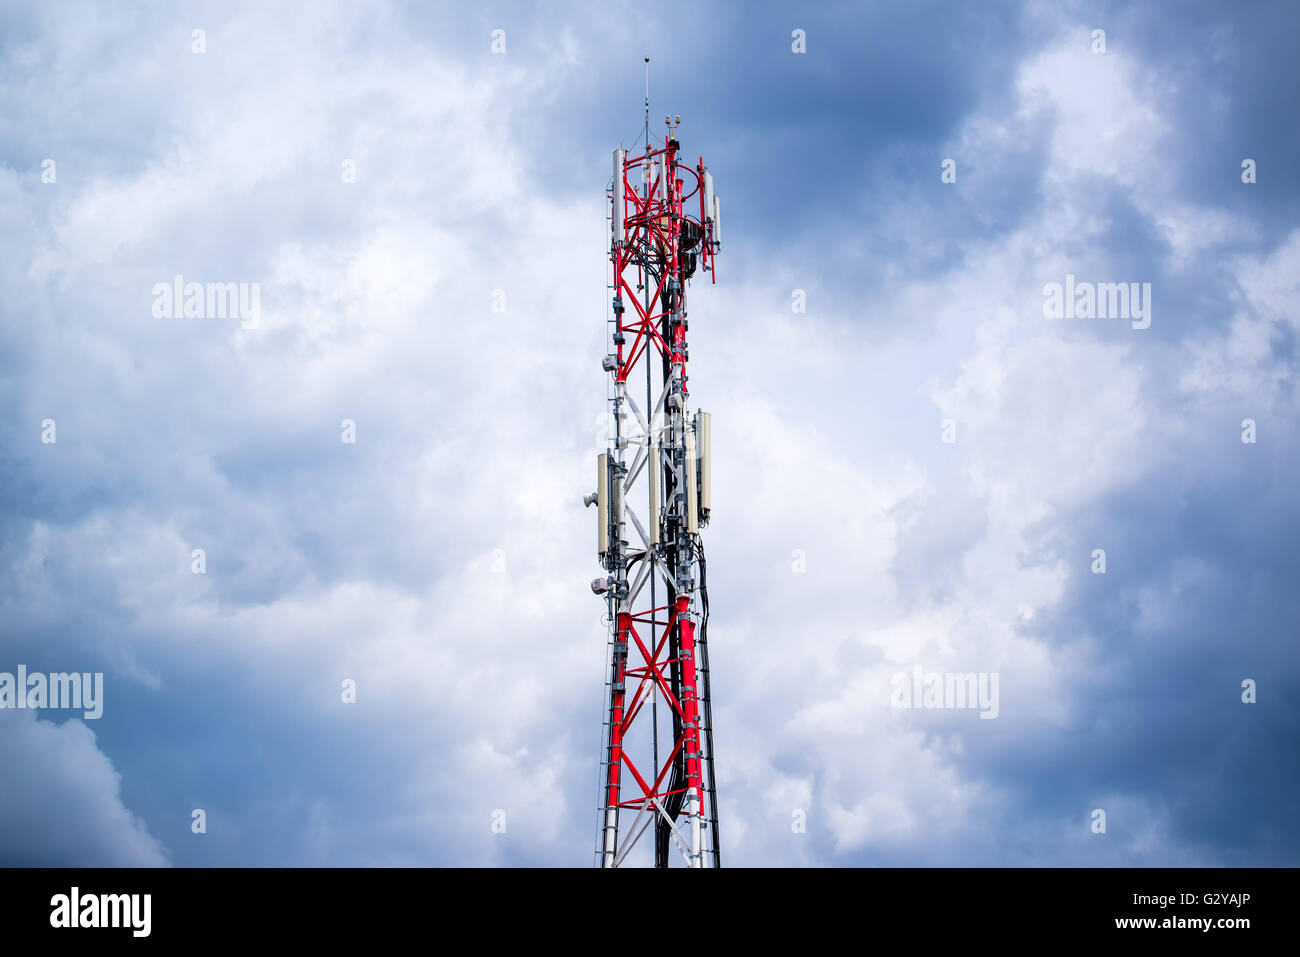 Mobile phone network GSM communication repeater antenna against cloudy sky - Stock Image